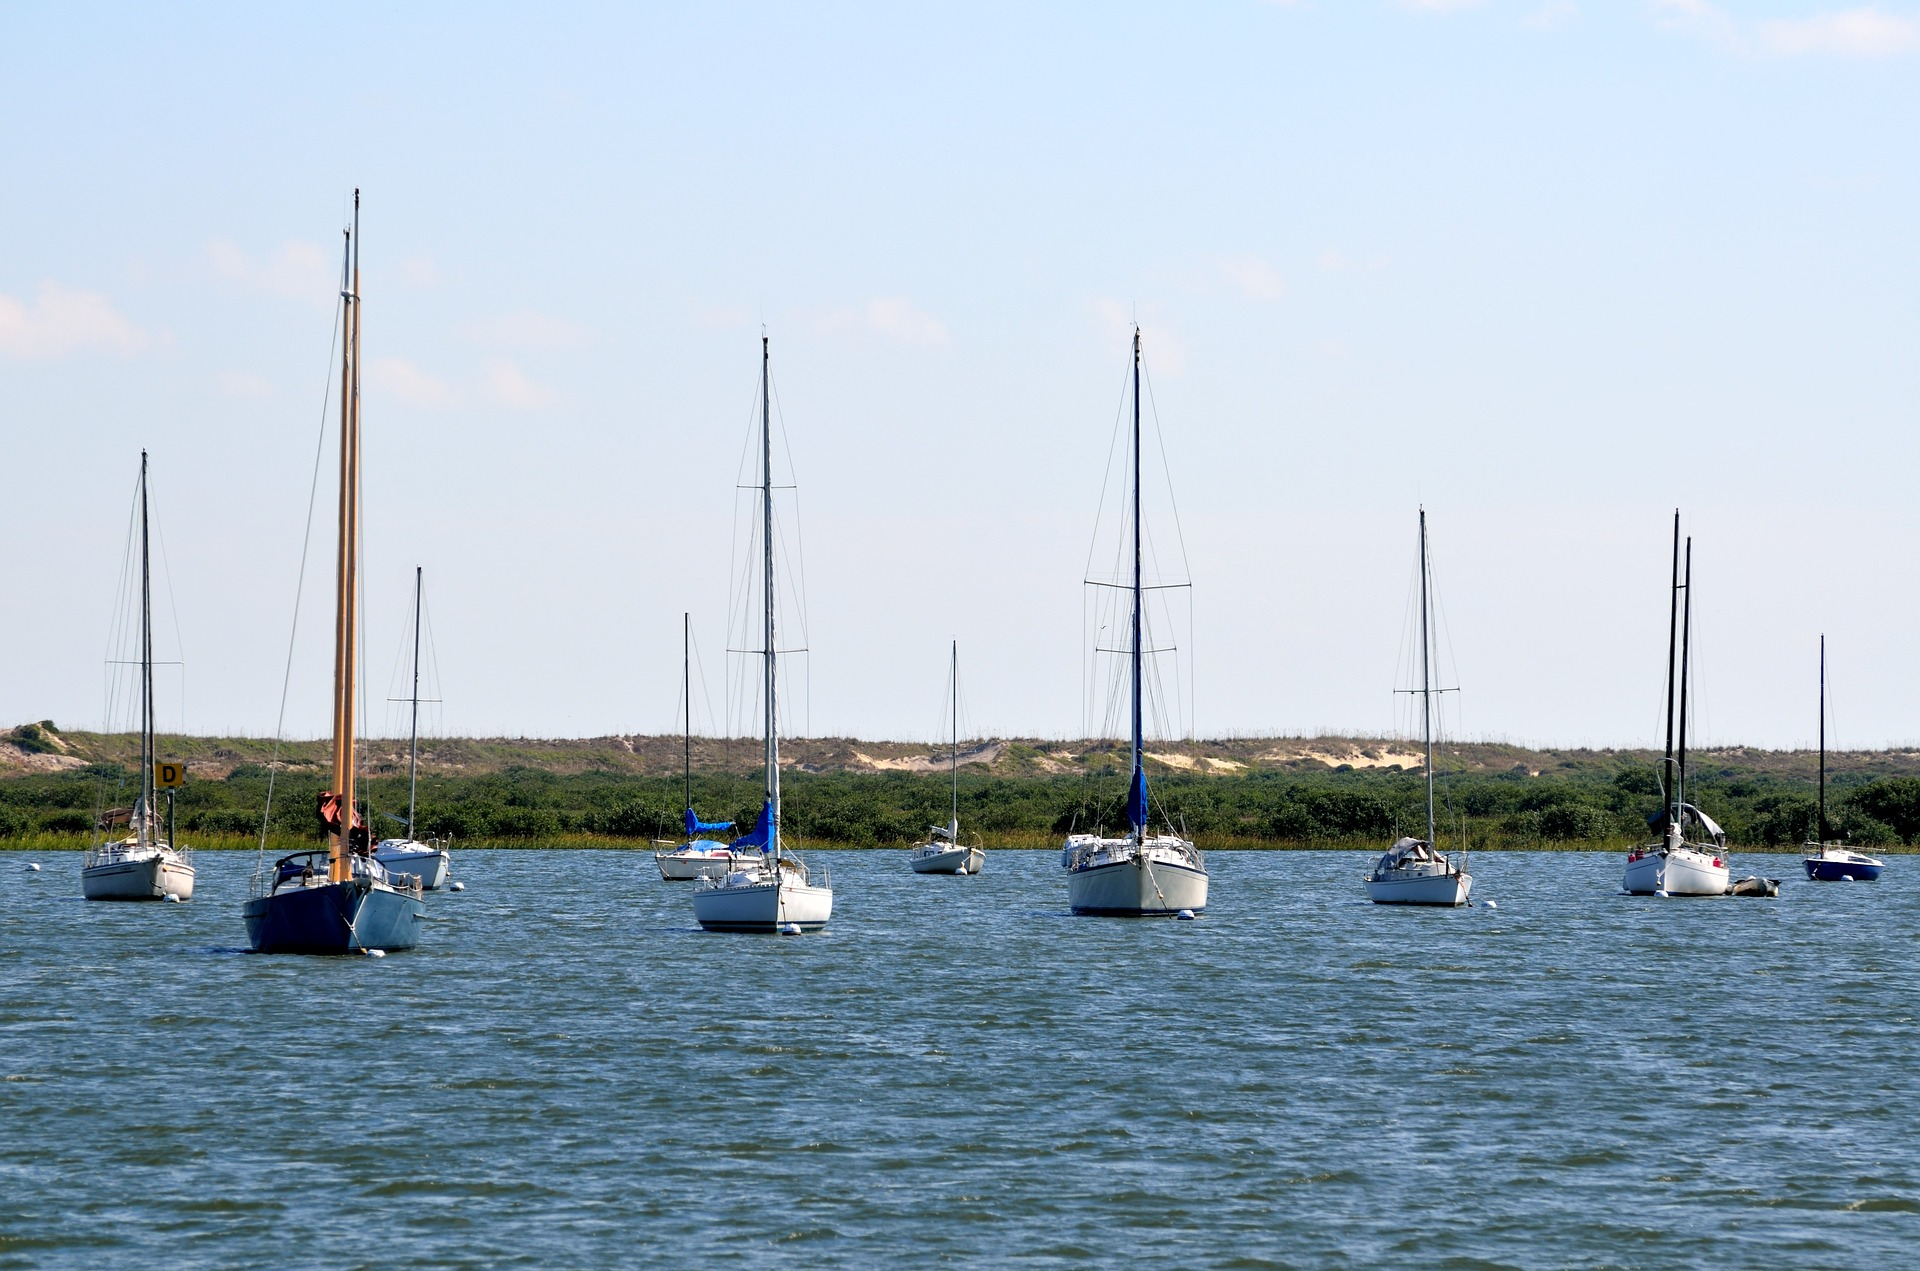 Sailboats at a mooring field which can be an effective low cost alternative keeping your boat in a slip.